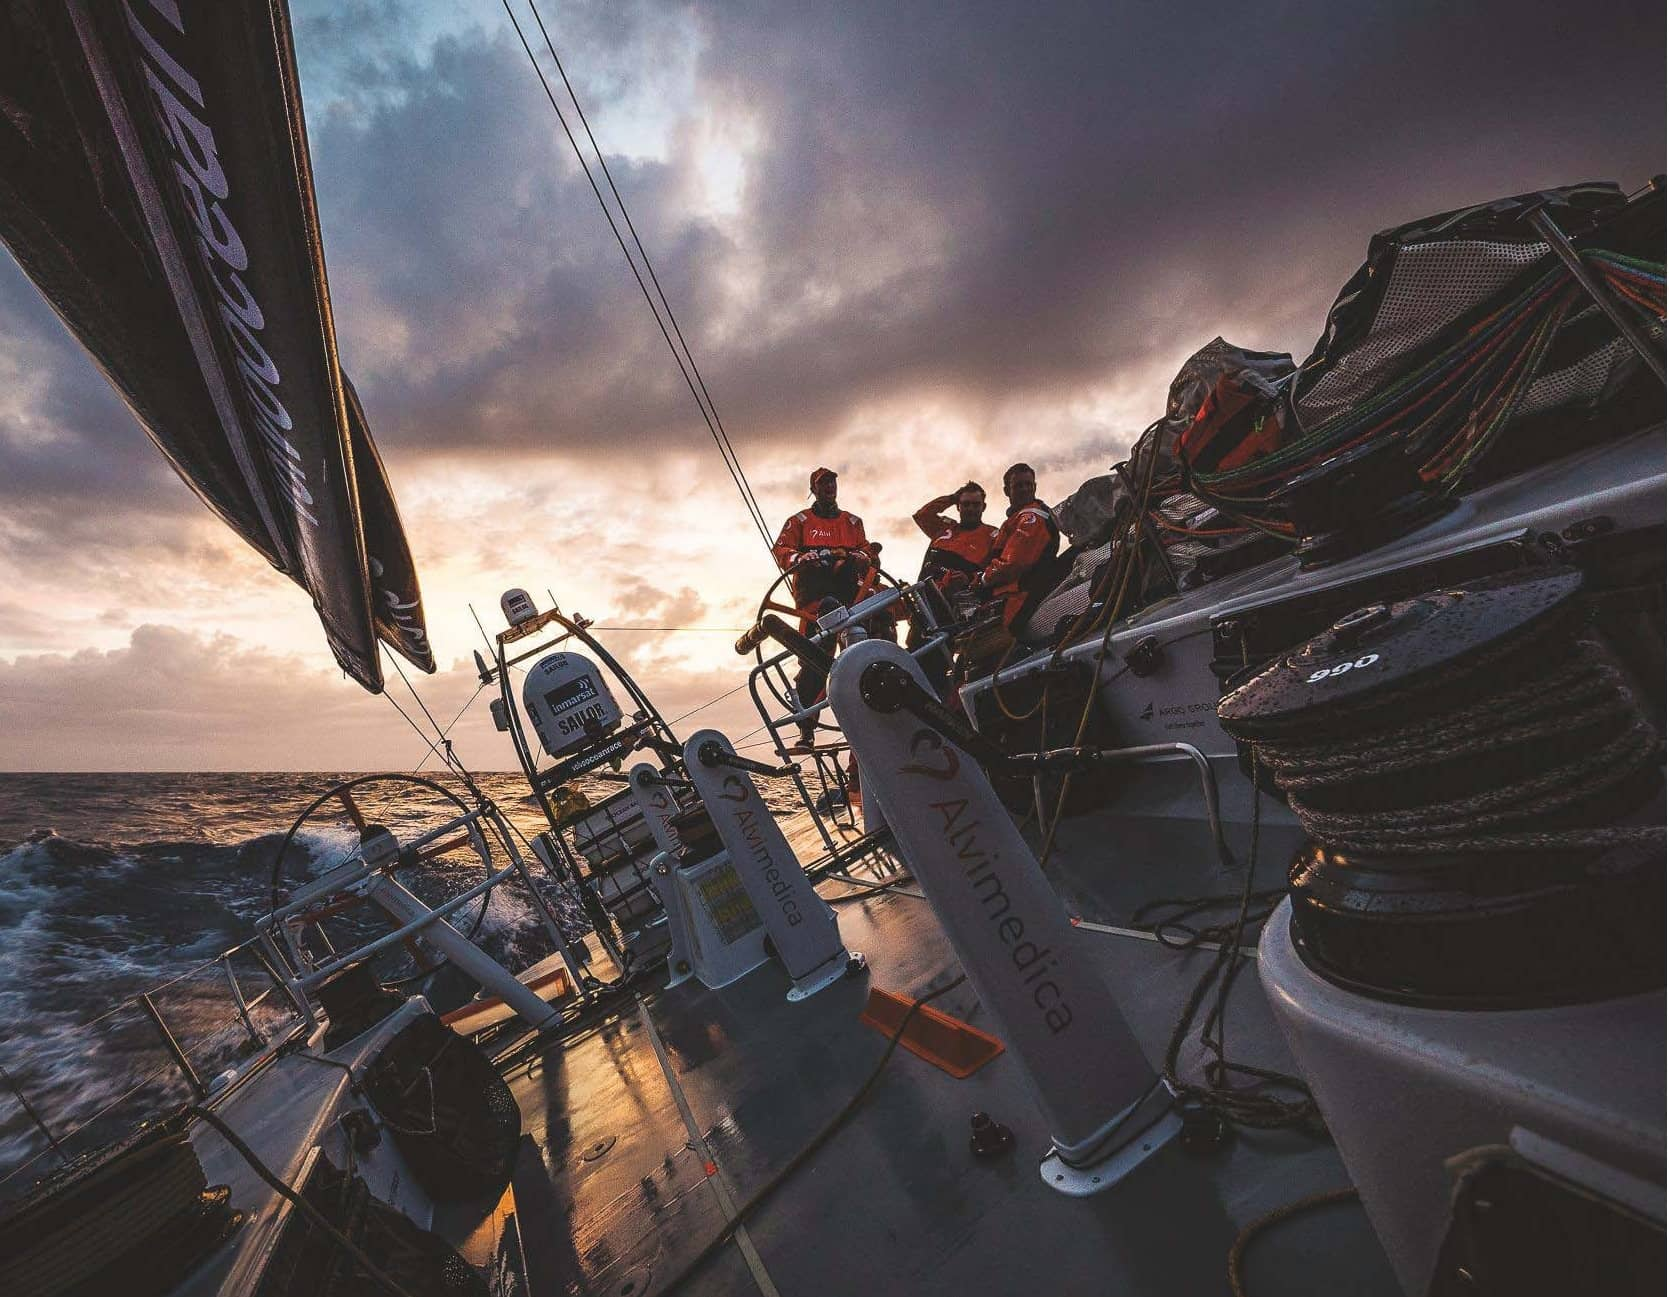 5 EXPERT TIPS - HOW TO HELM AT NIGHT